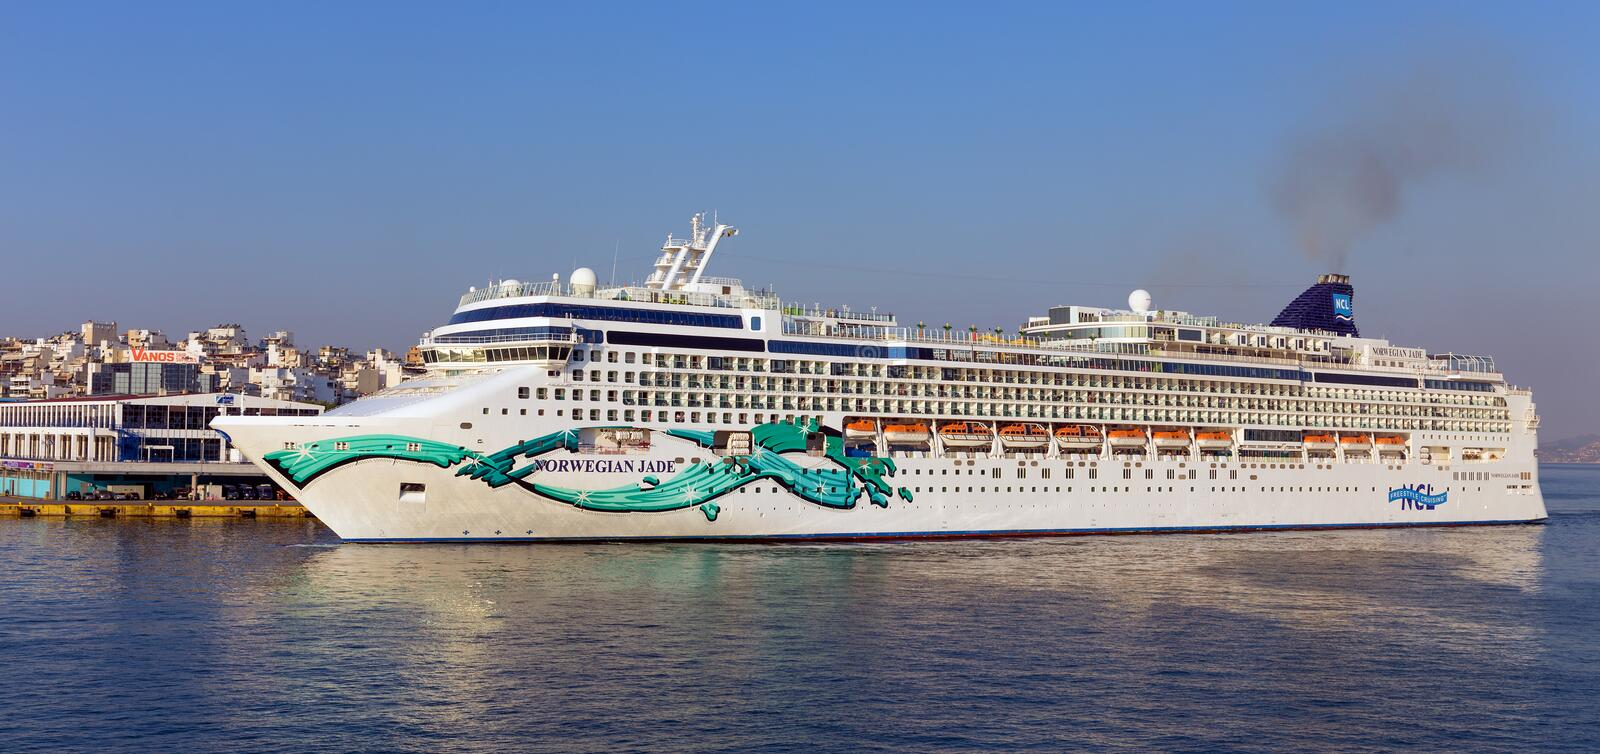 Cruise ship Norwegian Jade royalty free stock image